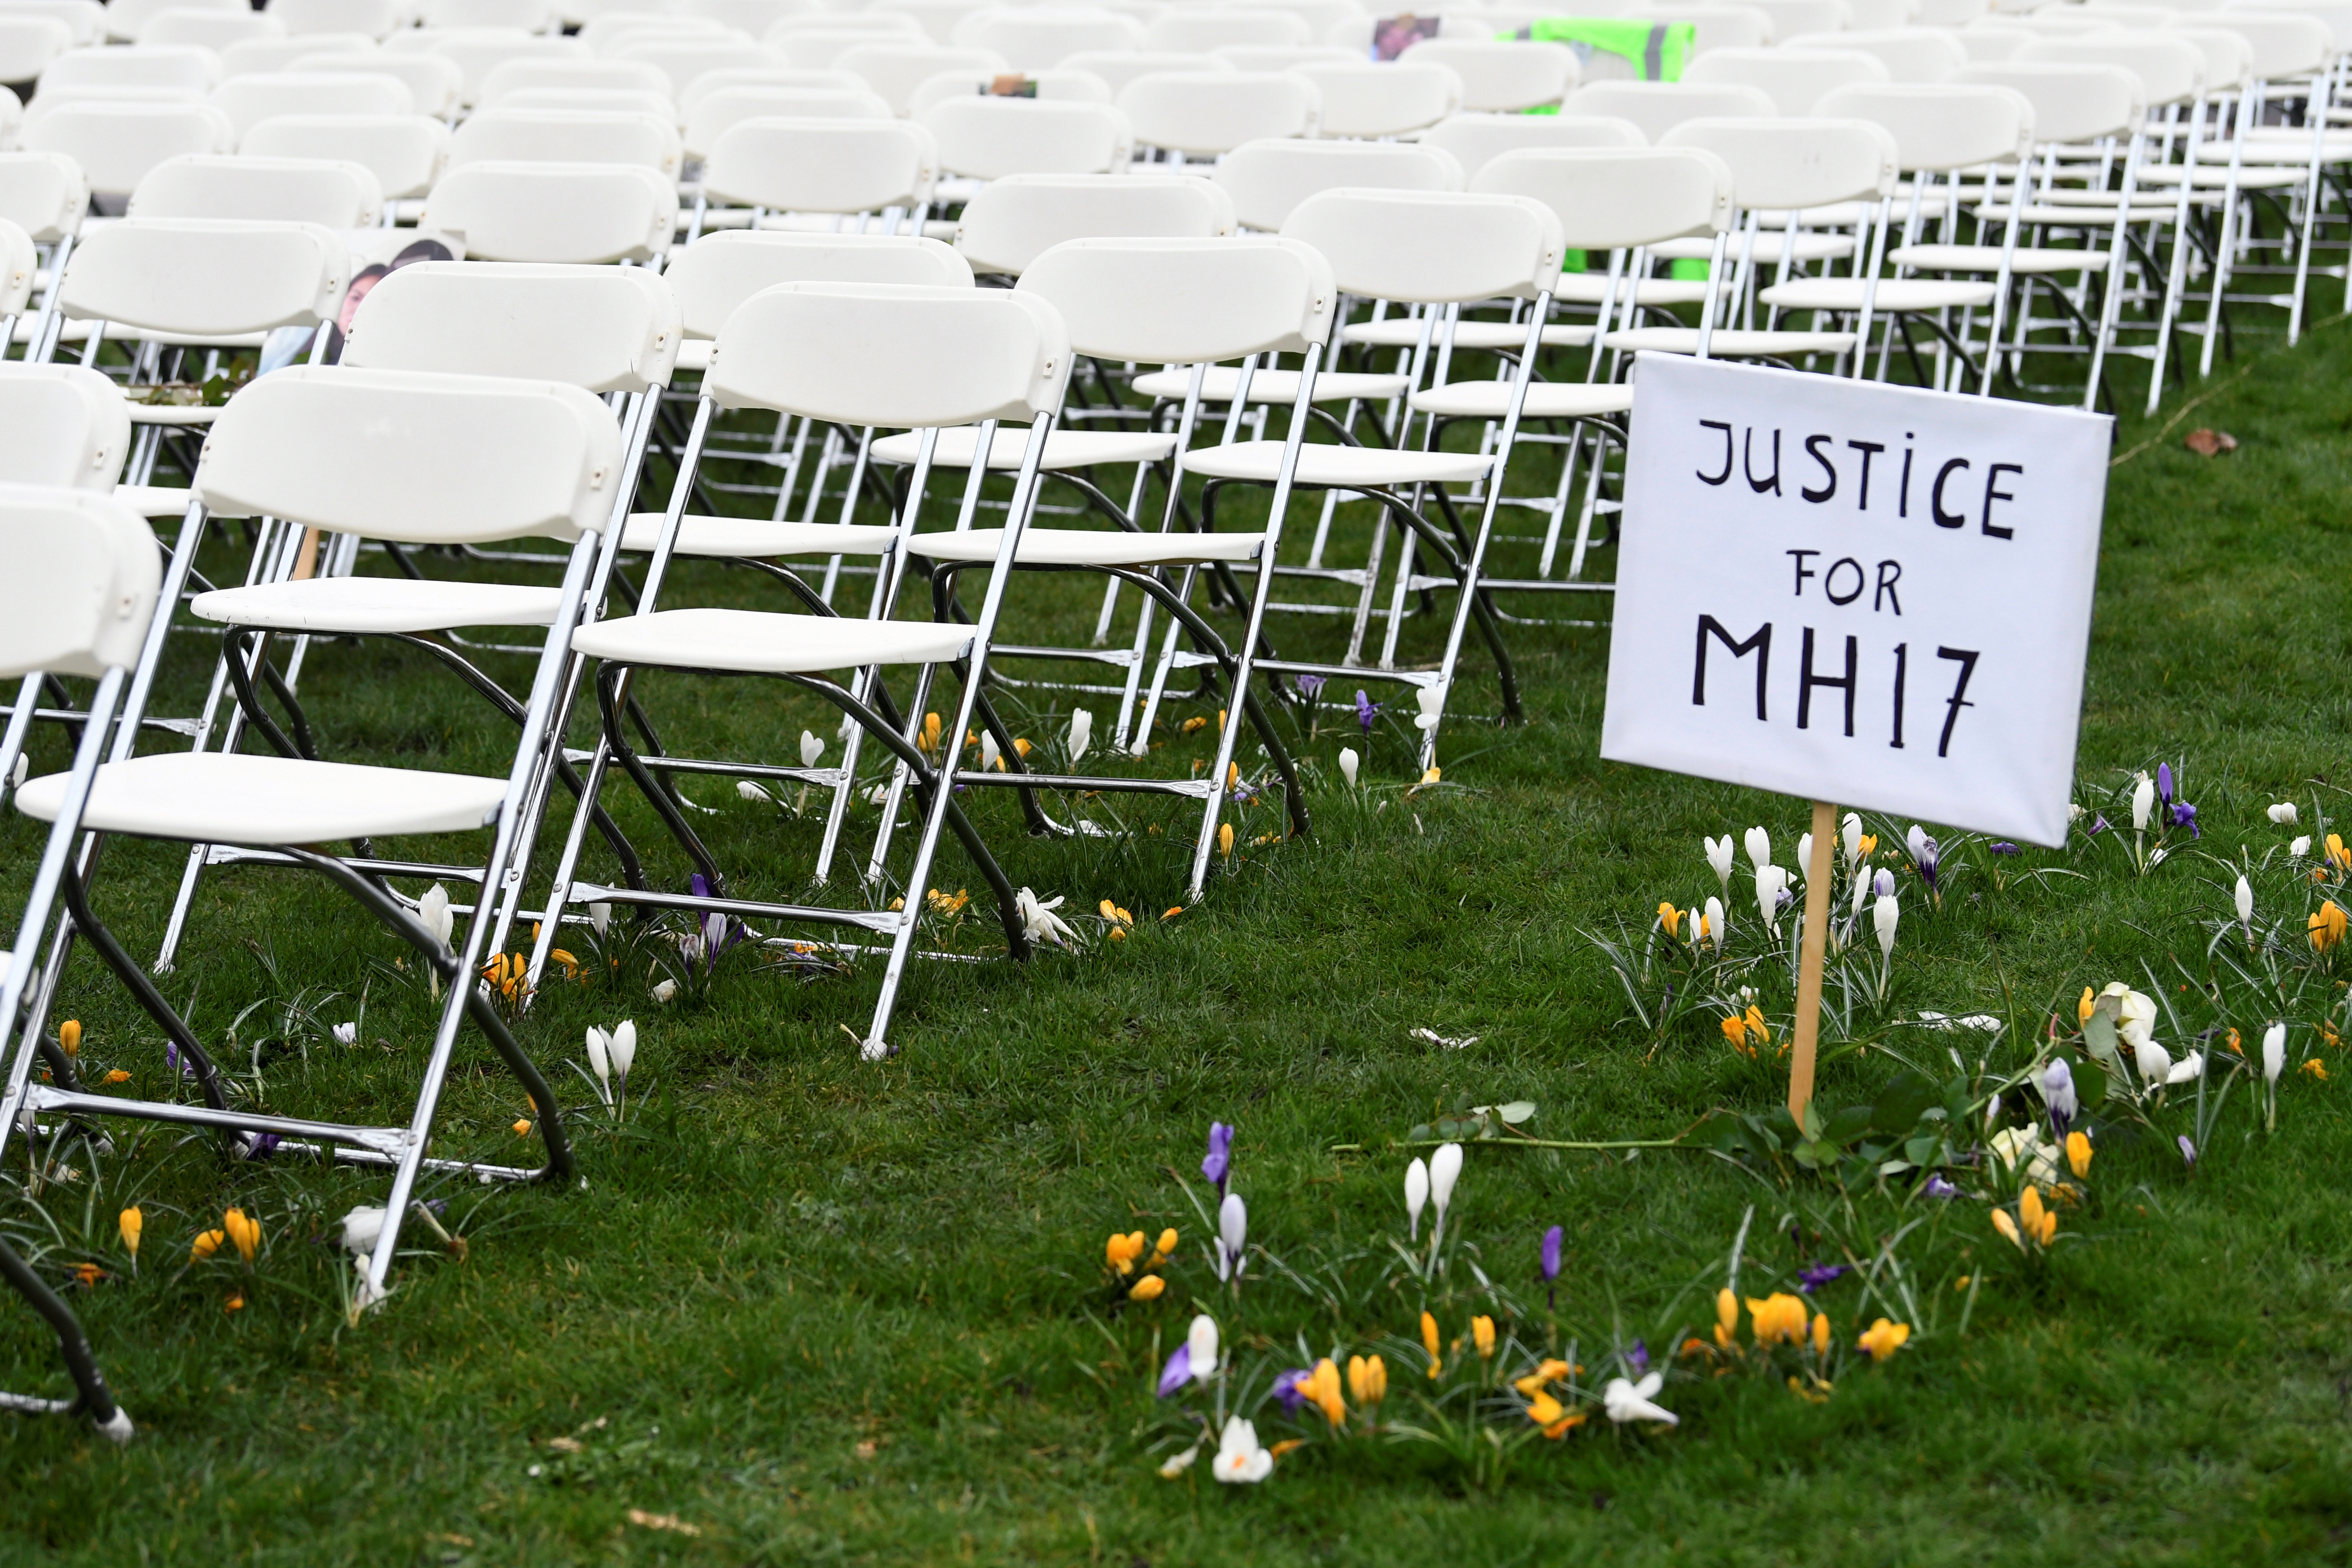 A protest sign stands next to rows of empty chairs, lined up by family members of victims of the MH17 crash line for each seat on the plane, during a protest outside the Russian Embassy in The Hague, Netherlands March 8, 2020.  REUTERS/Piroschka van de Wouw